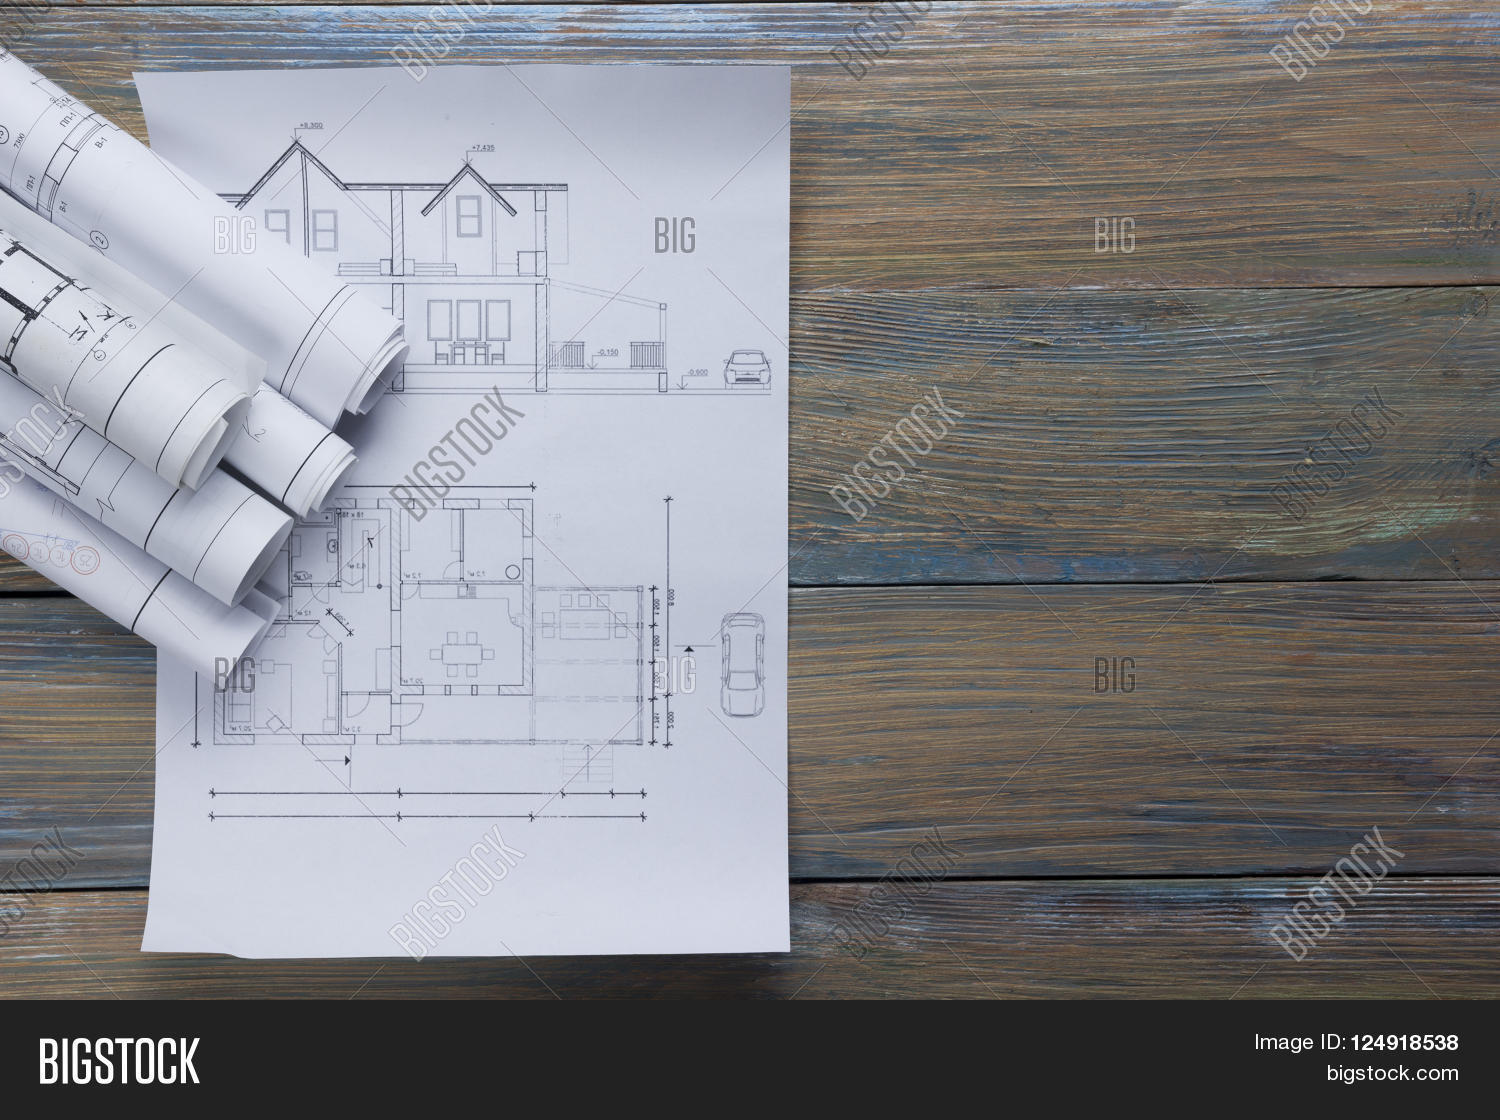 Vintage Architectural Blueprints Rchitect Worplace Top Image Photo Free Trial Bigstock